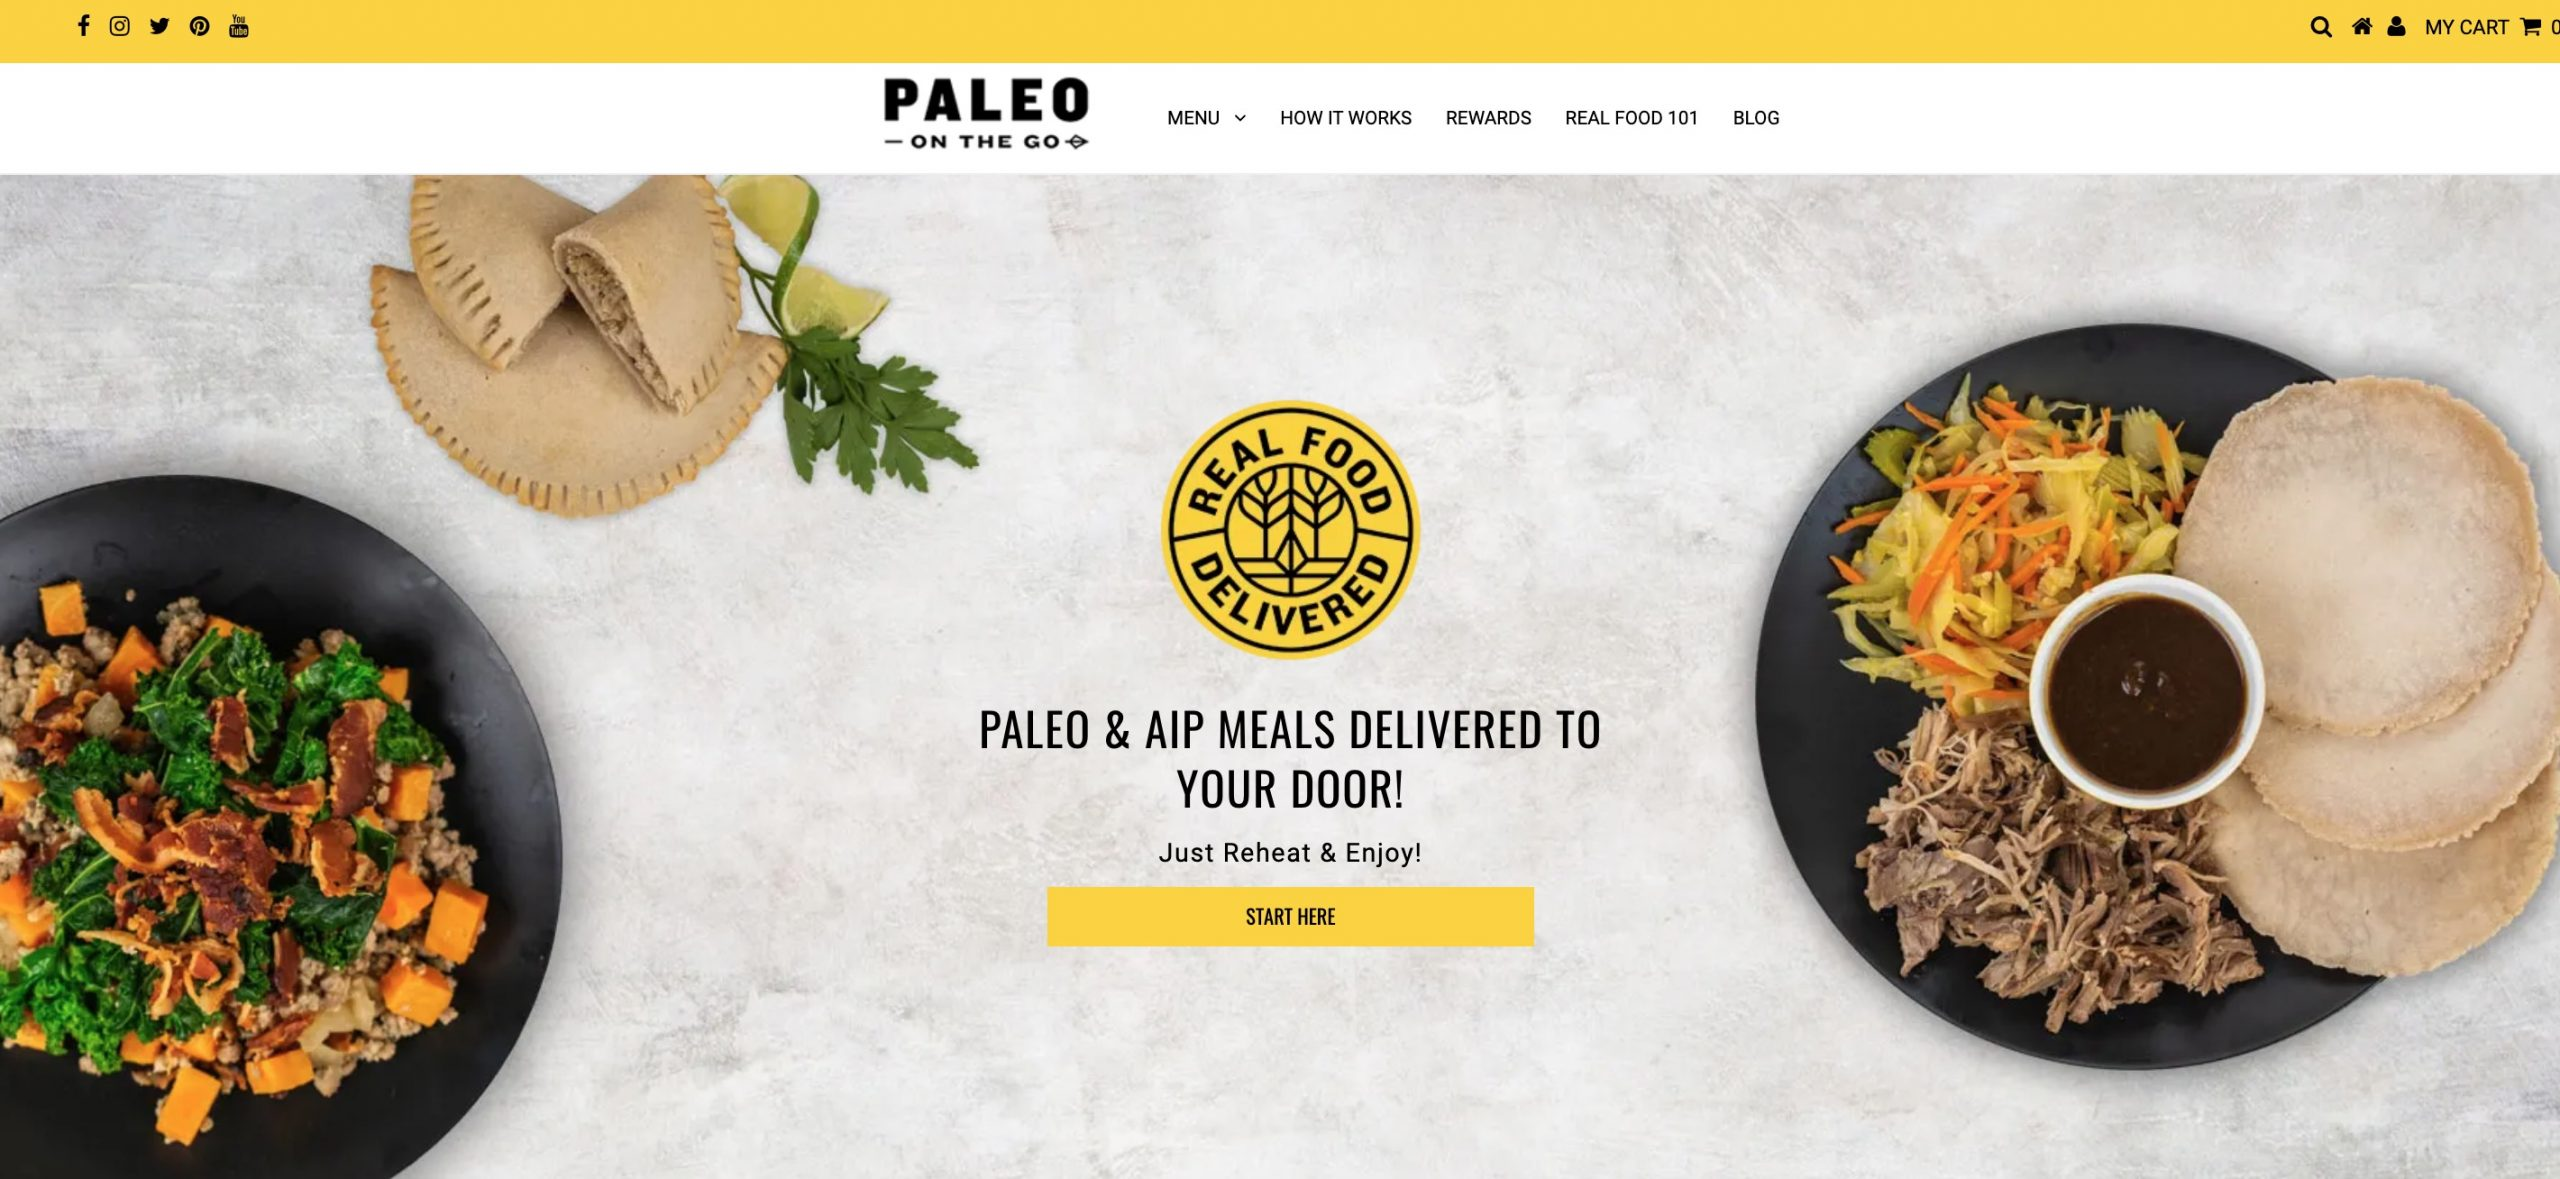 Paleo on the Go Short main page